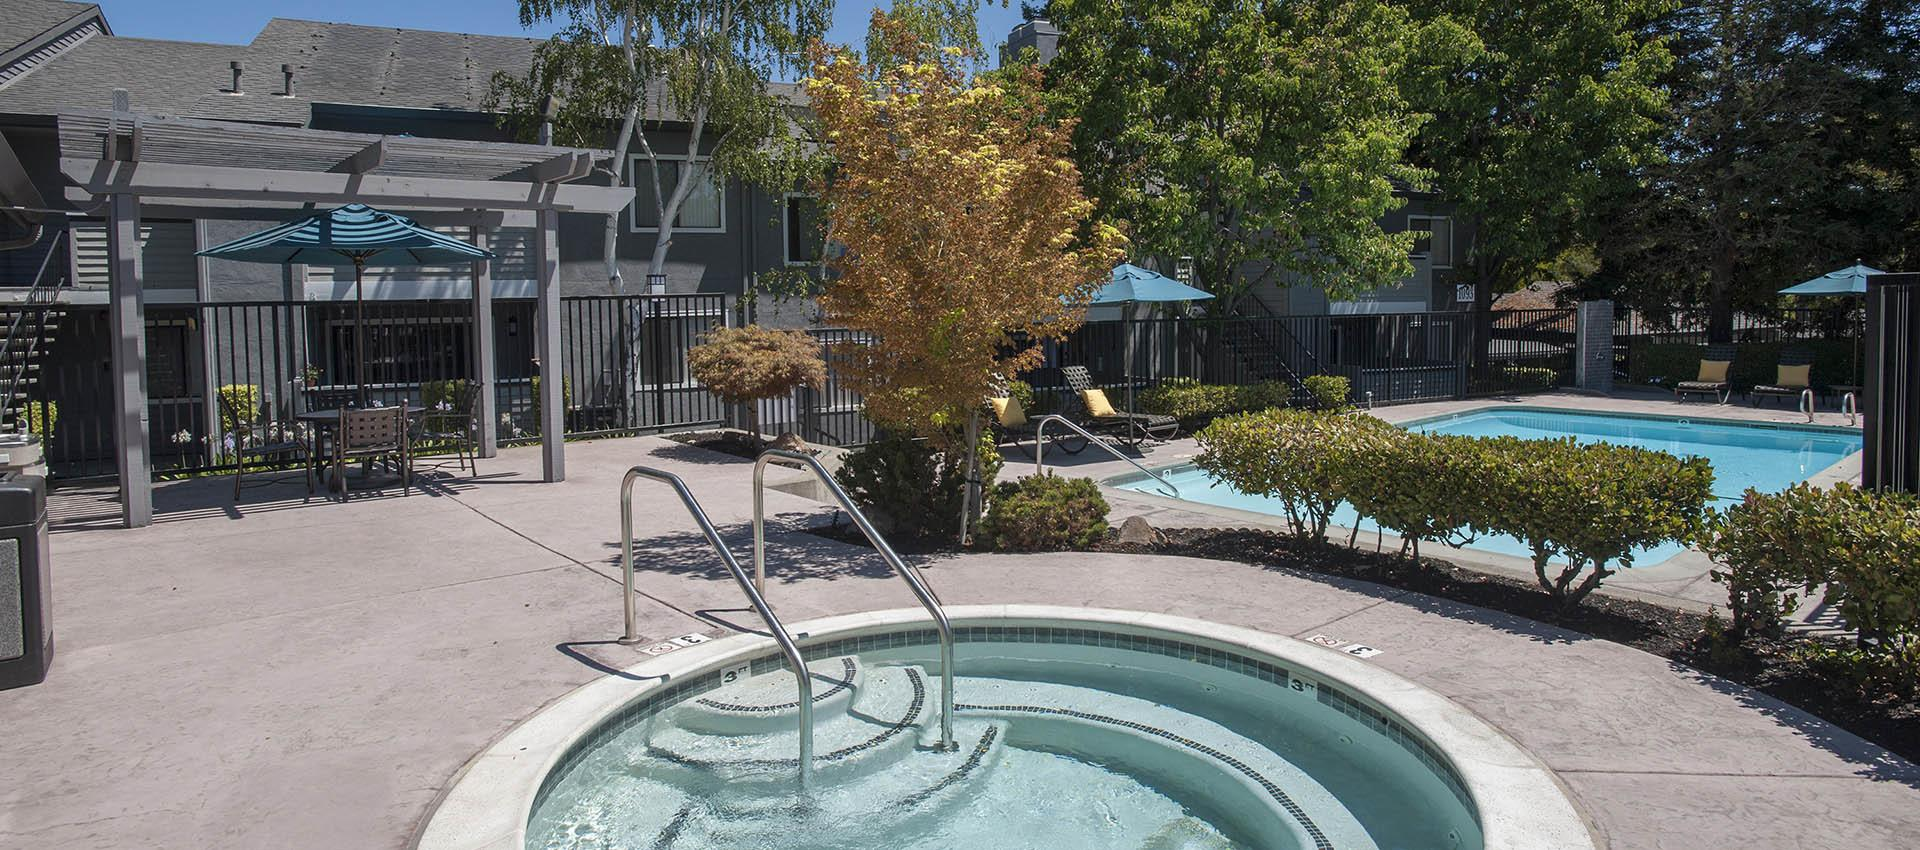 Hot Tub And Pool Deck at Plum Tree Apartment Homes in Martinez, CA